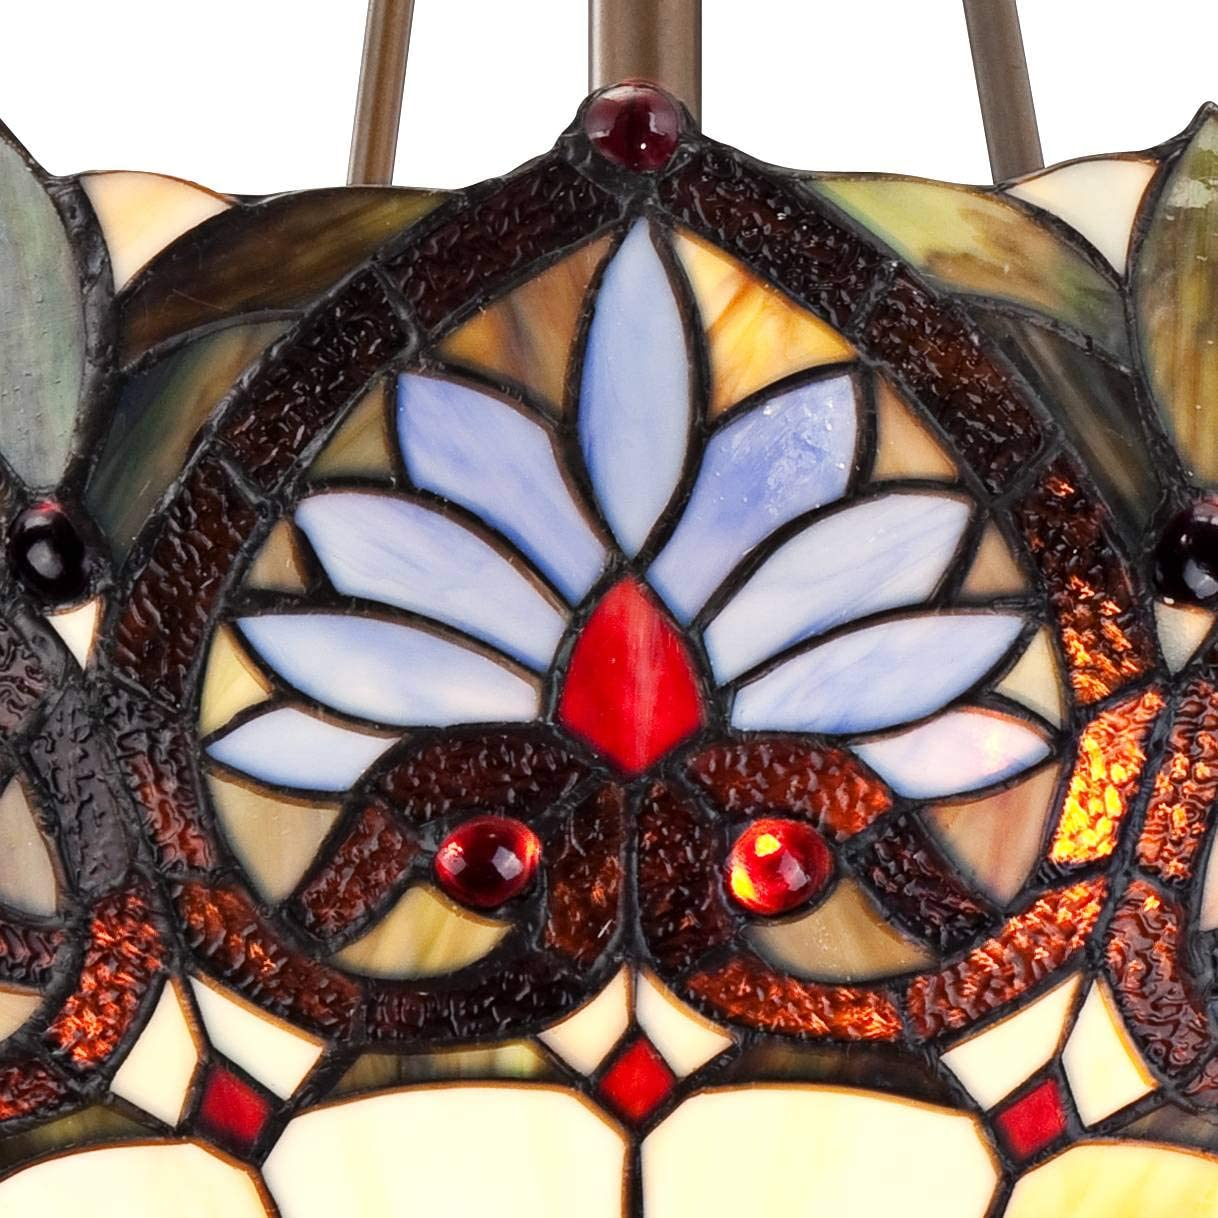 Tropical Floral Vintage Bronze Tiffany Pendant Chandelier 20 1 2 Wide Bowl Stained Glass 3-Light Fixture for Dining Room House Island Entryway Bedroom Living Room – Robert Louis Tiffany